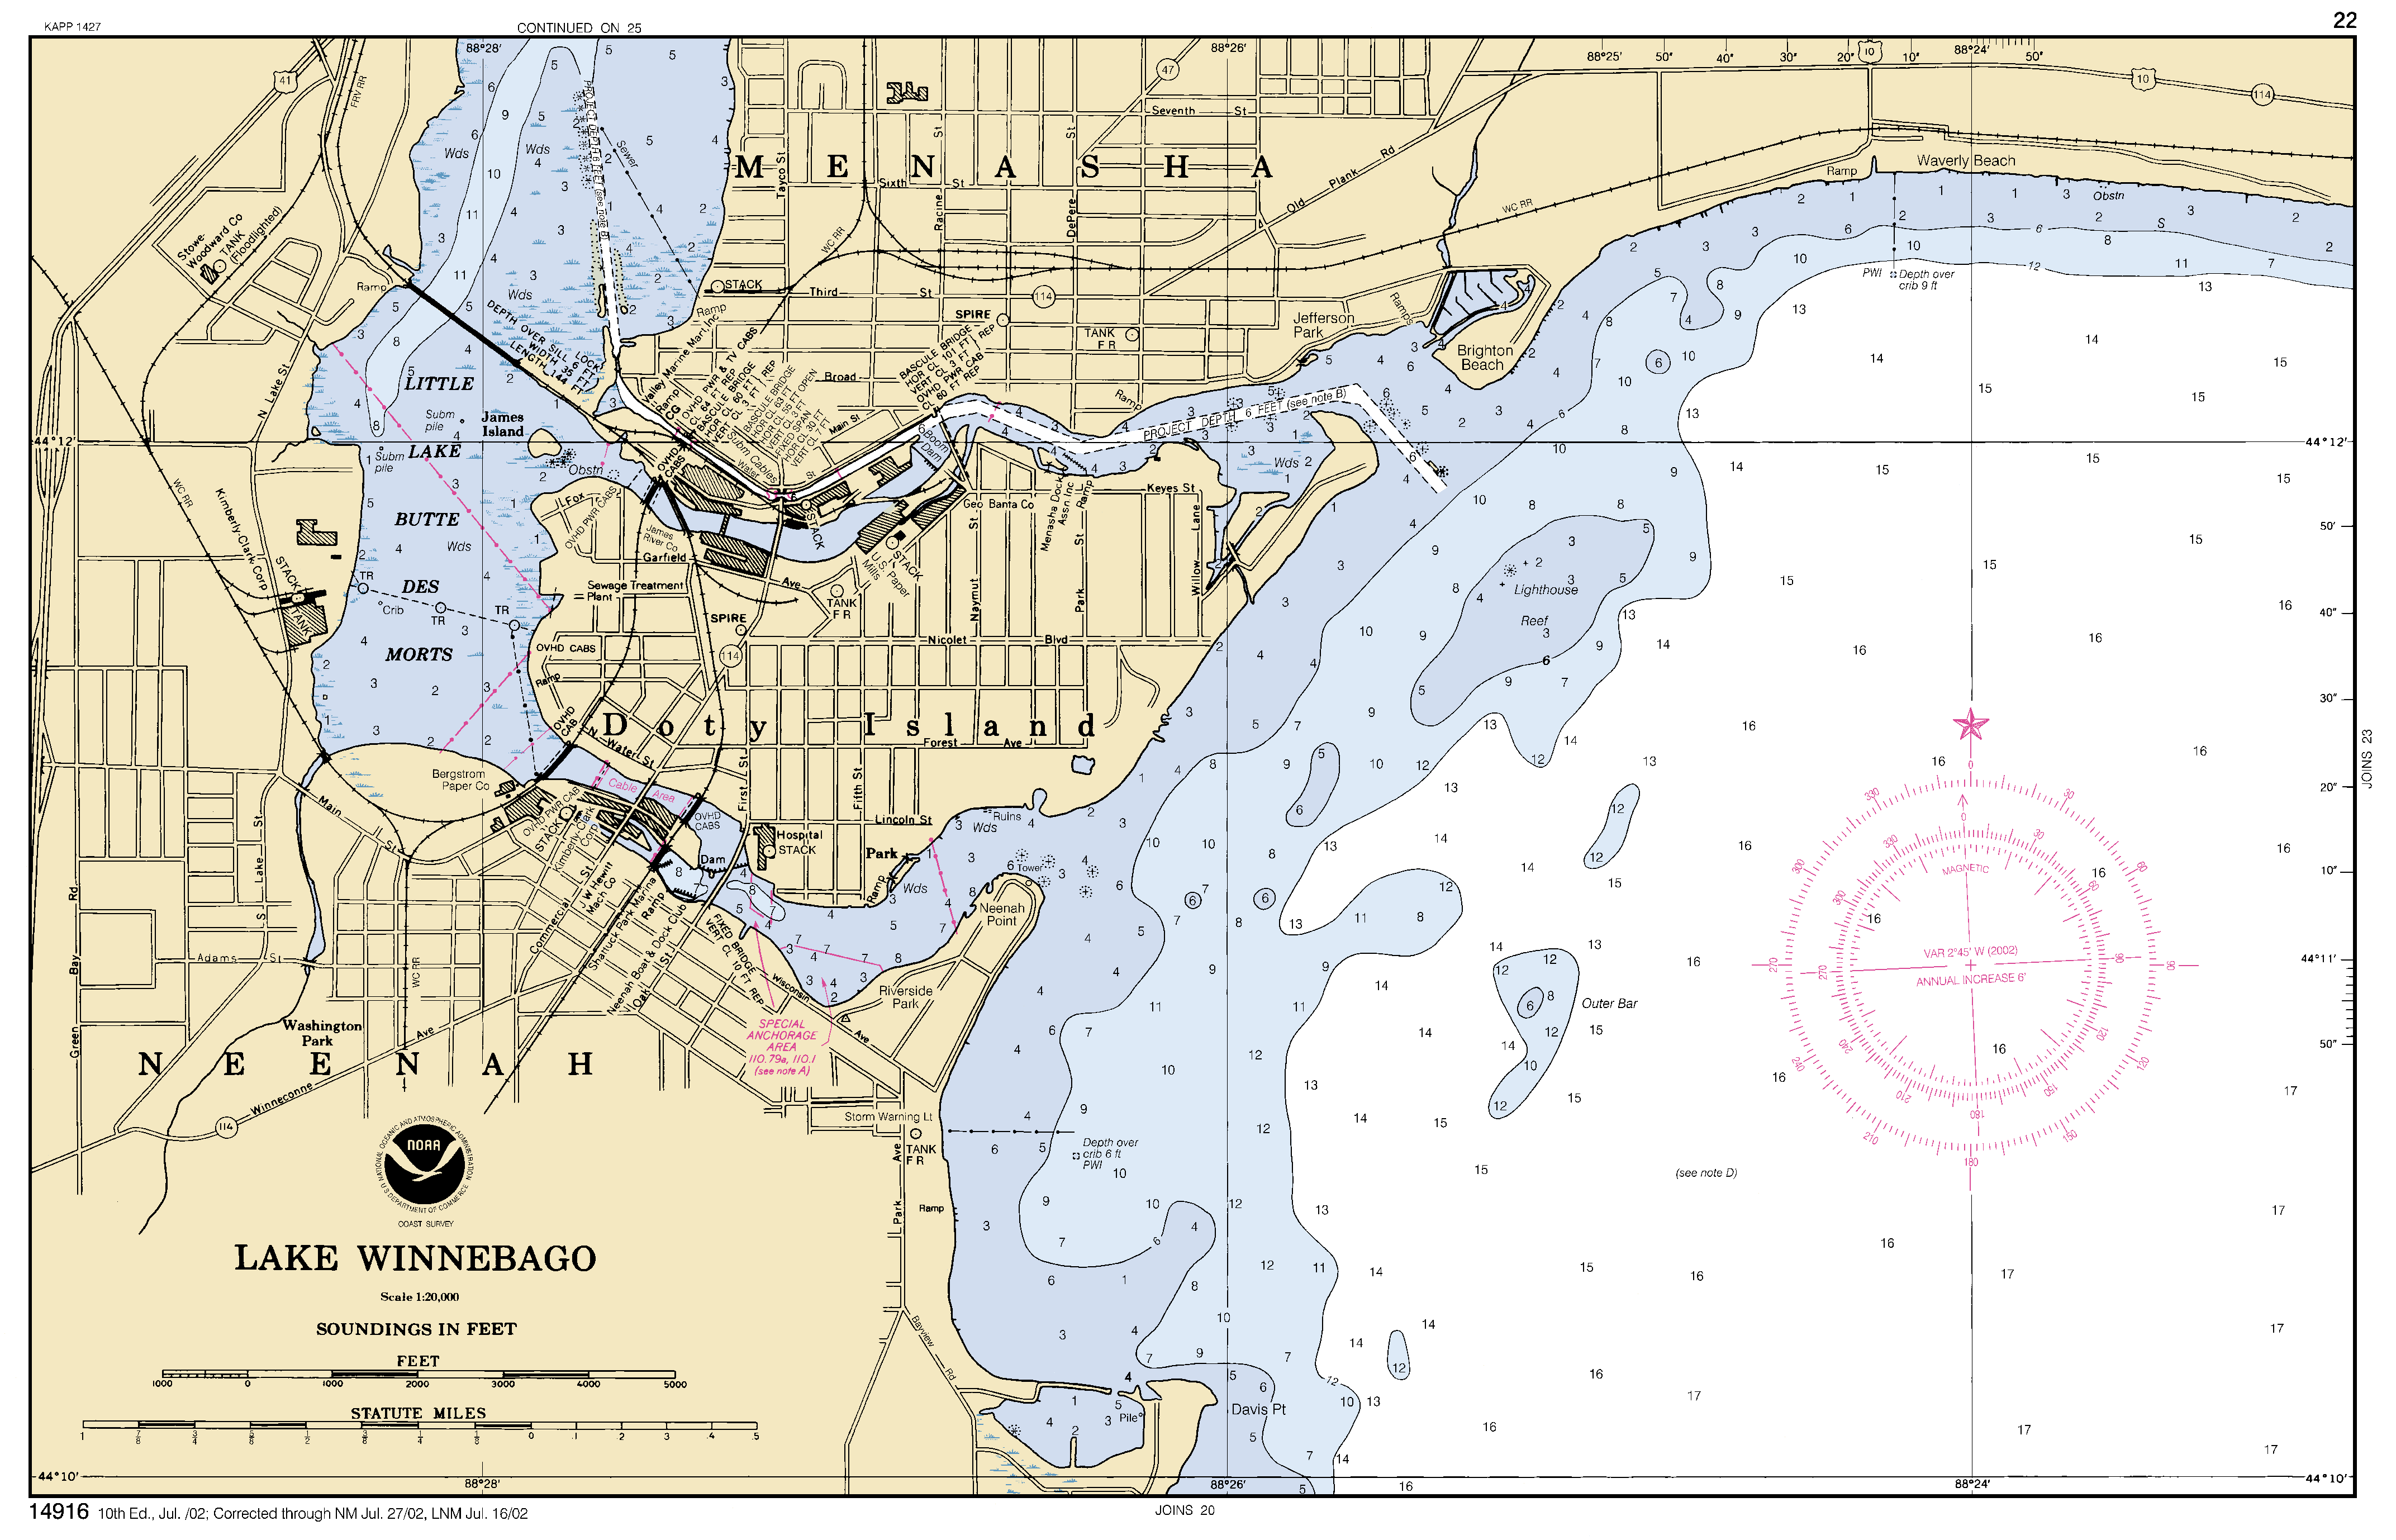 wisconsin dnr lake maps with 14916 23 Lake Winnebago Fox Riv Pg 22 on Place Detail in addition Search additionally Pikelake as well Biarritz France Map likewise Water Wars Resume In Wisconsin Over Foxconn Deal.